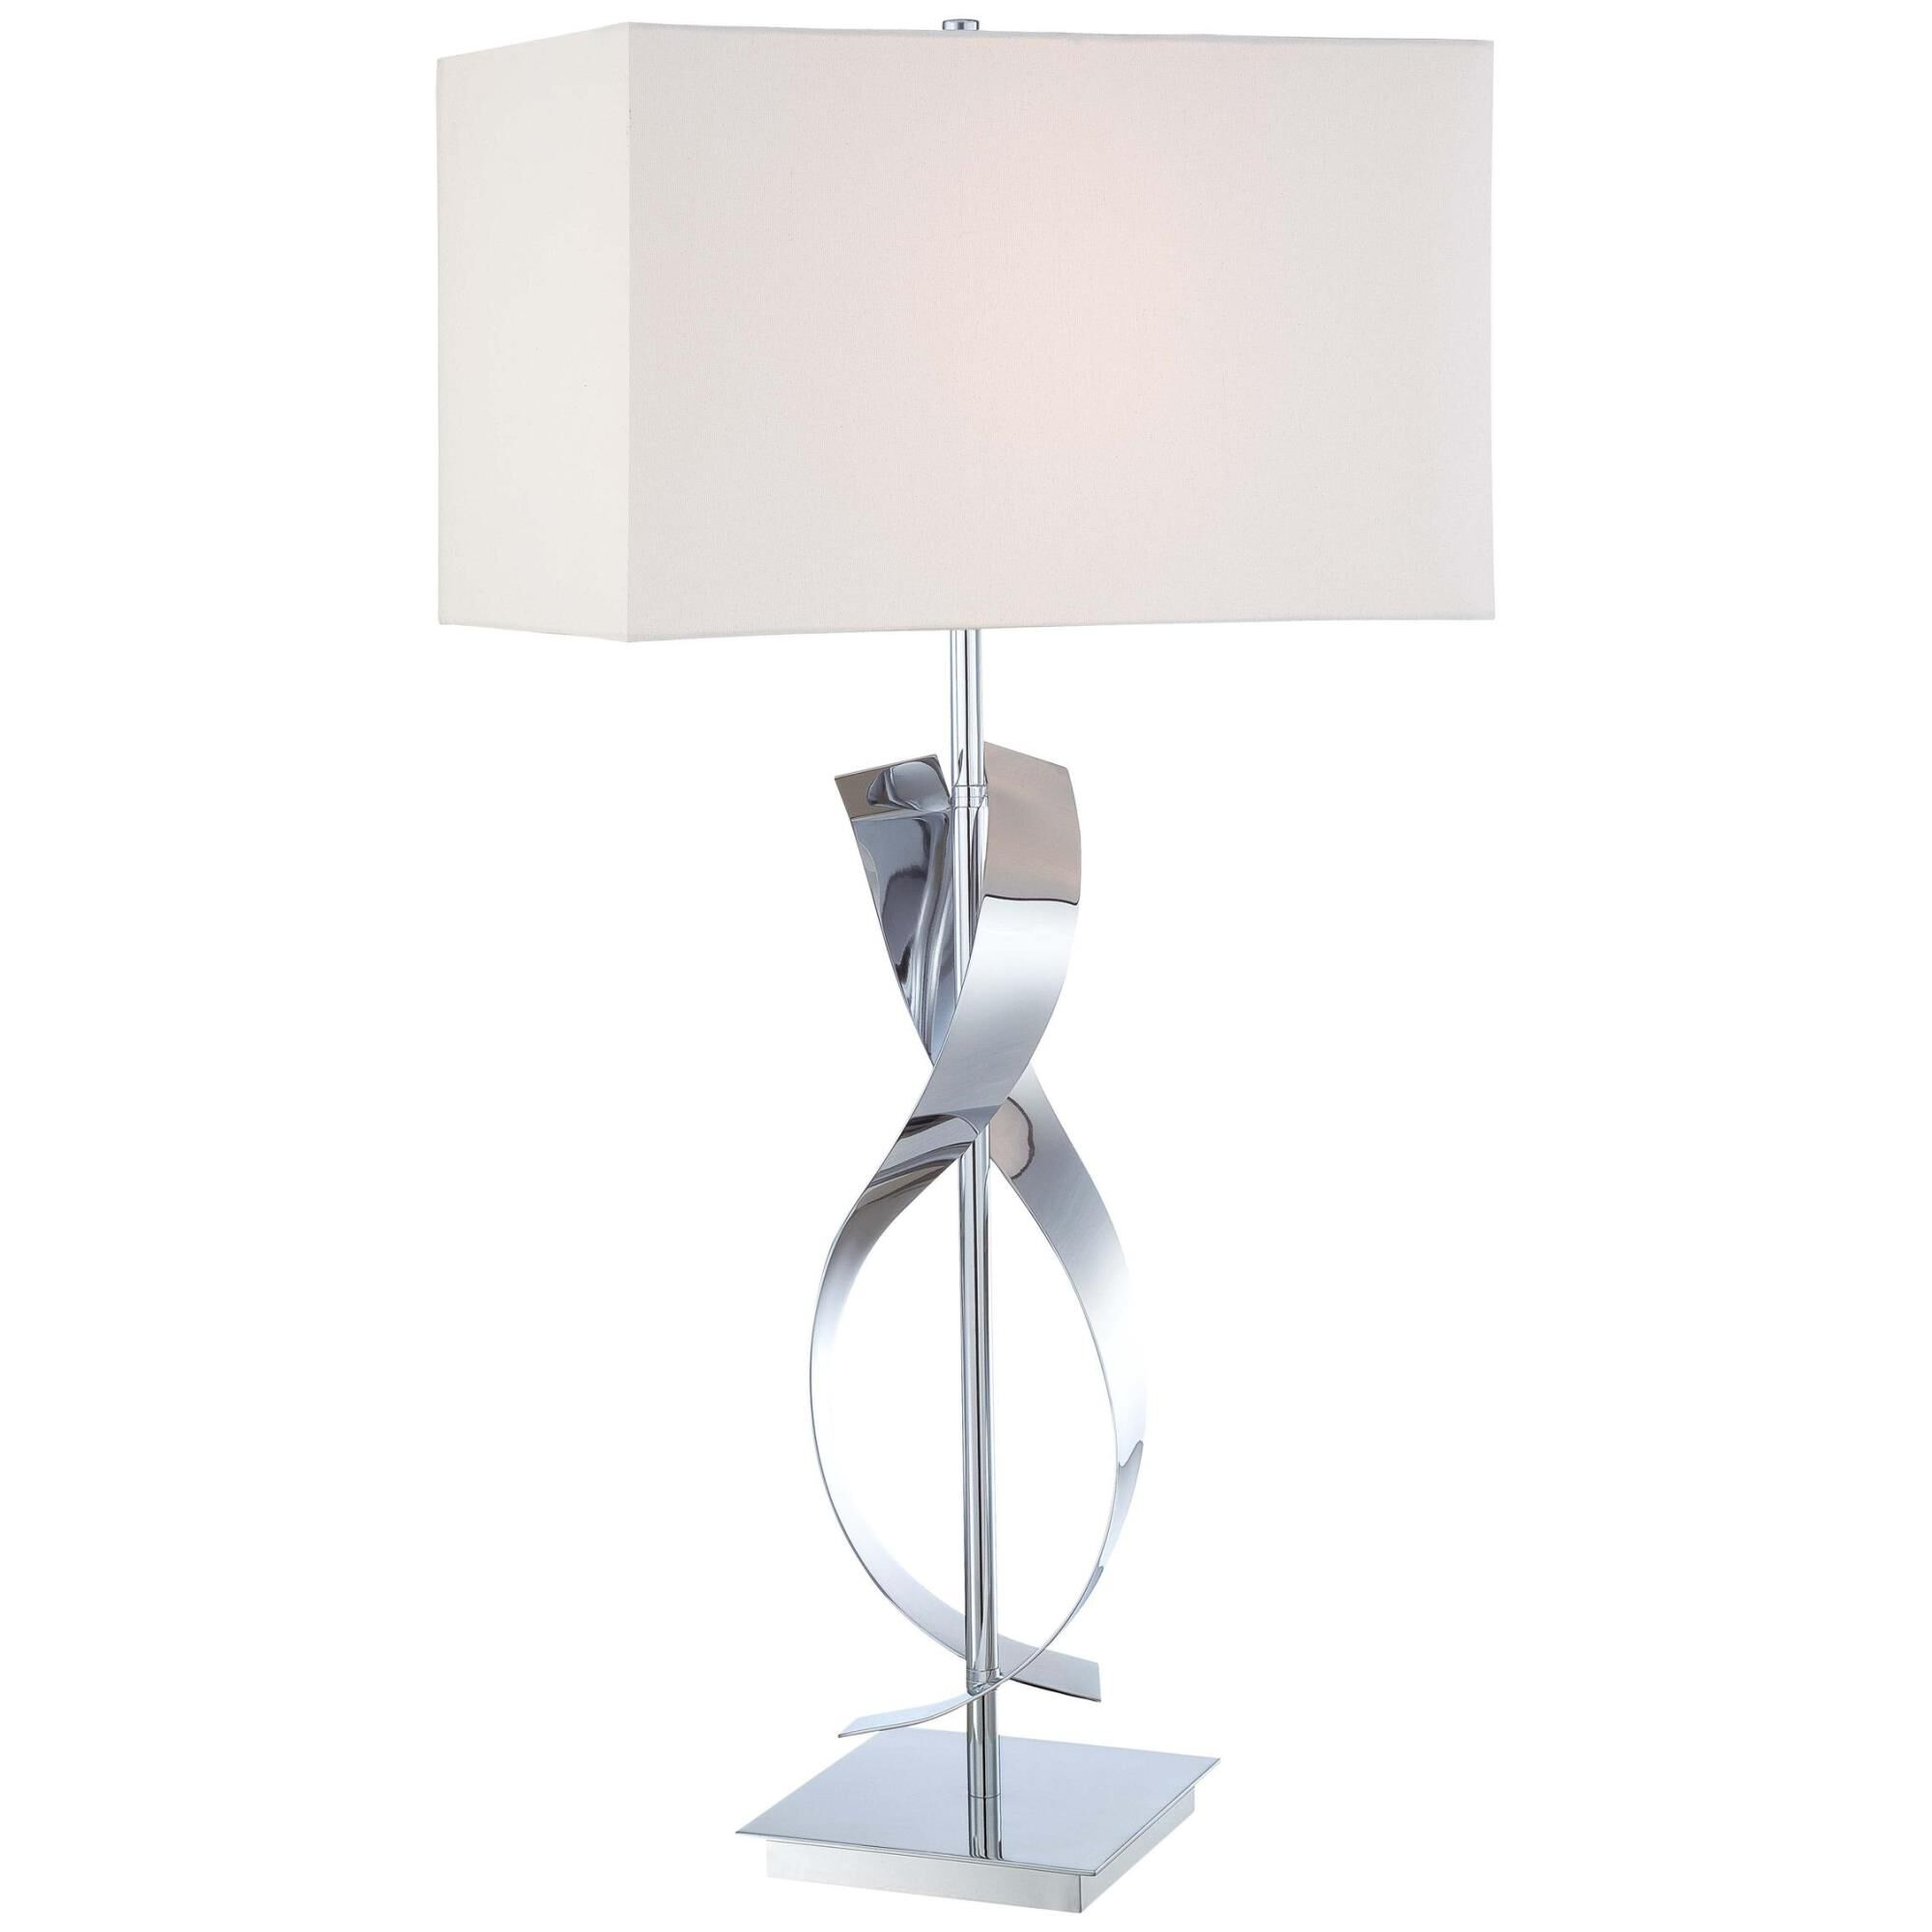 Kovacs 33 Inch Table Lamp - P723-077 - Modern Contemporary